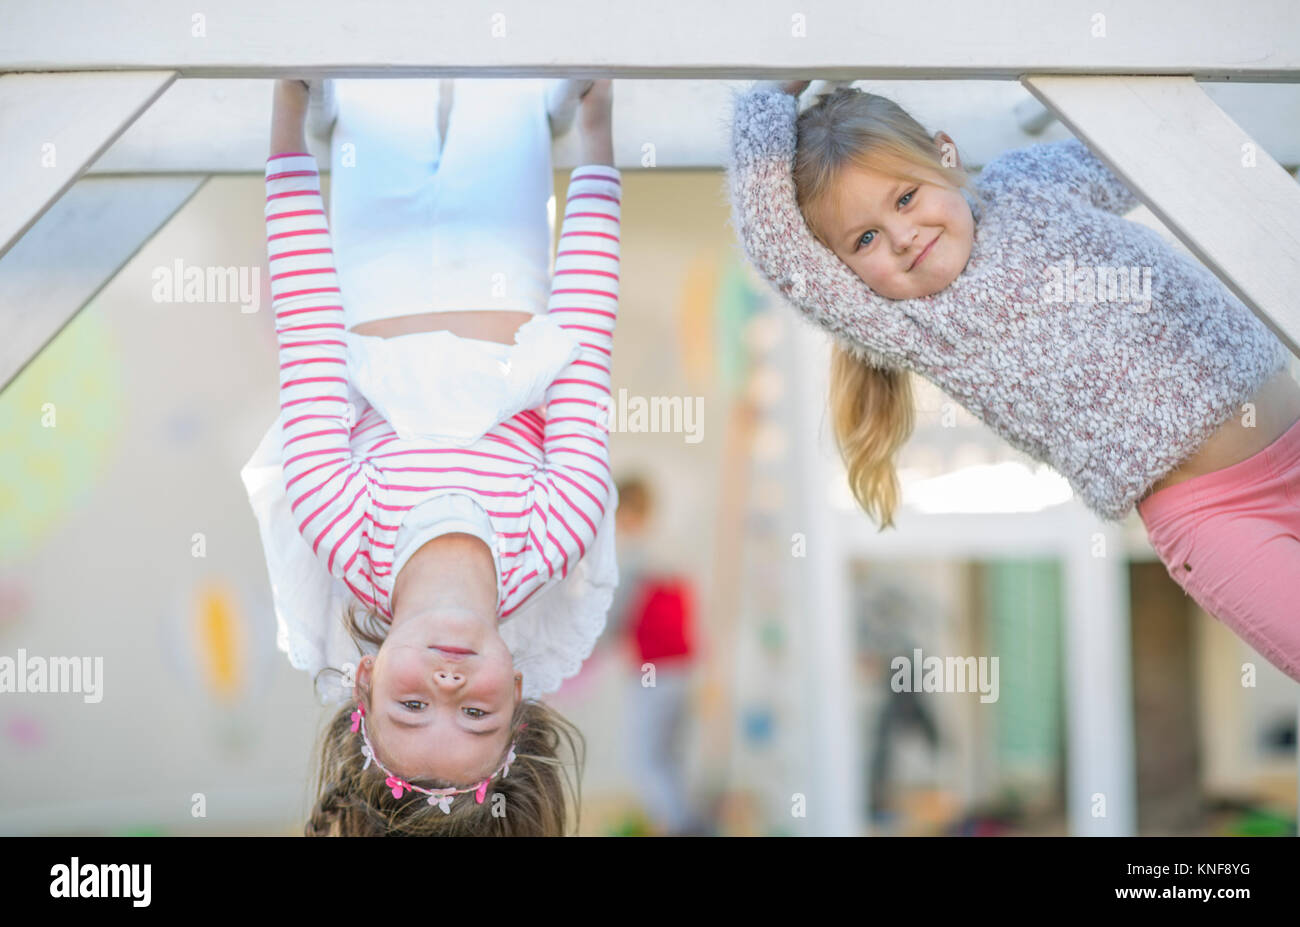 Child Hanging Upside Down In Stock Photos Amp Child Hanging Upside Down In Stock Images